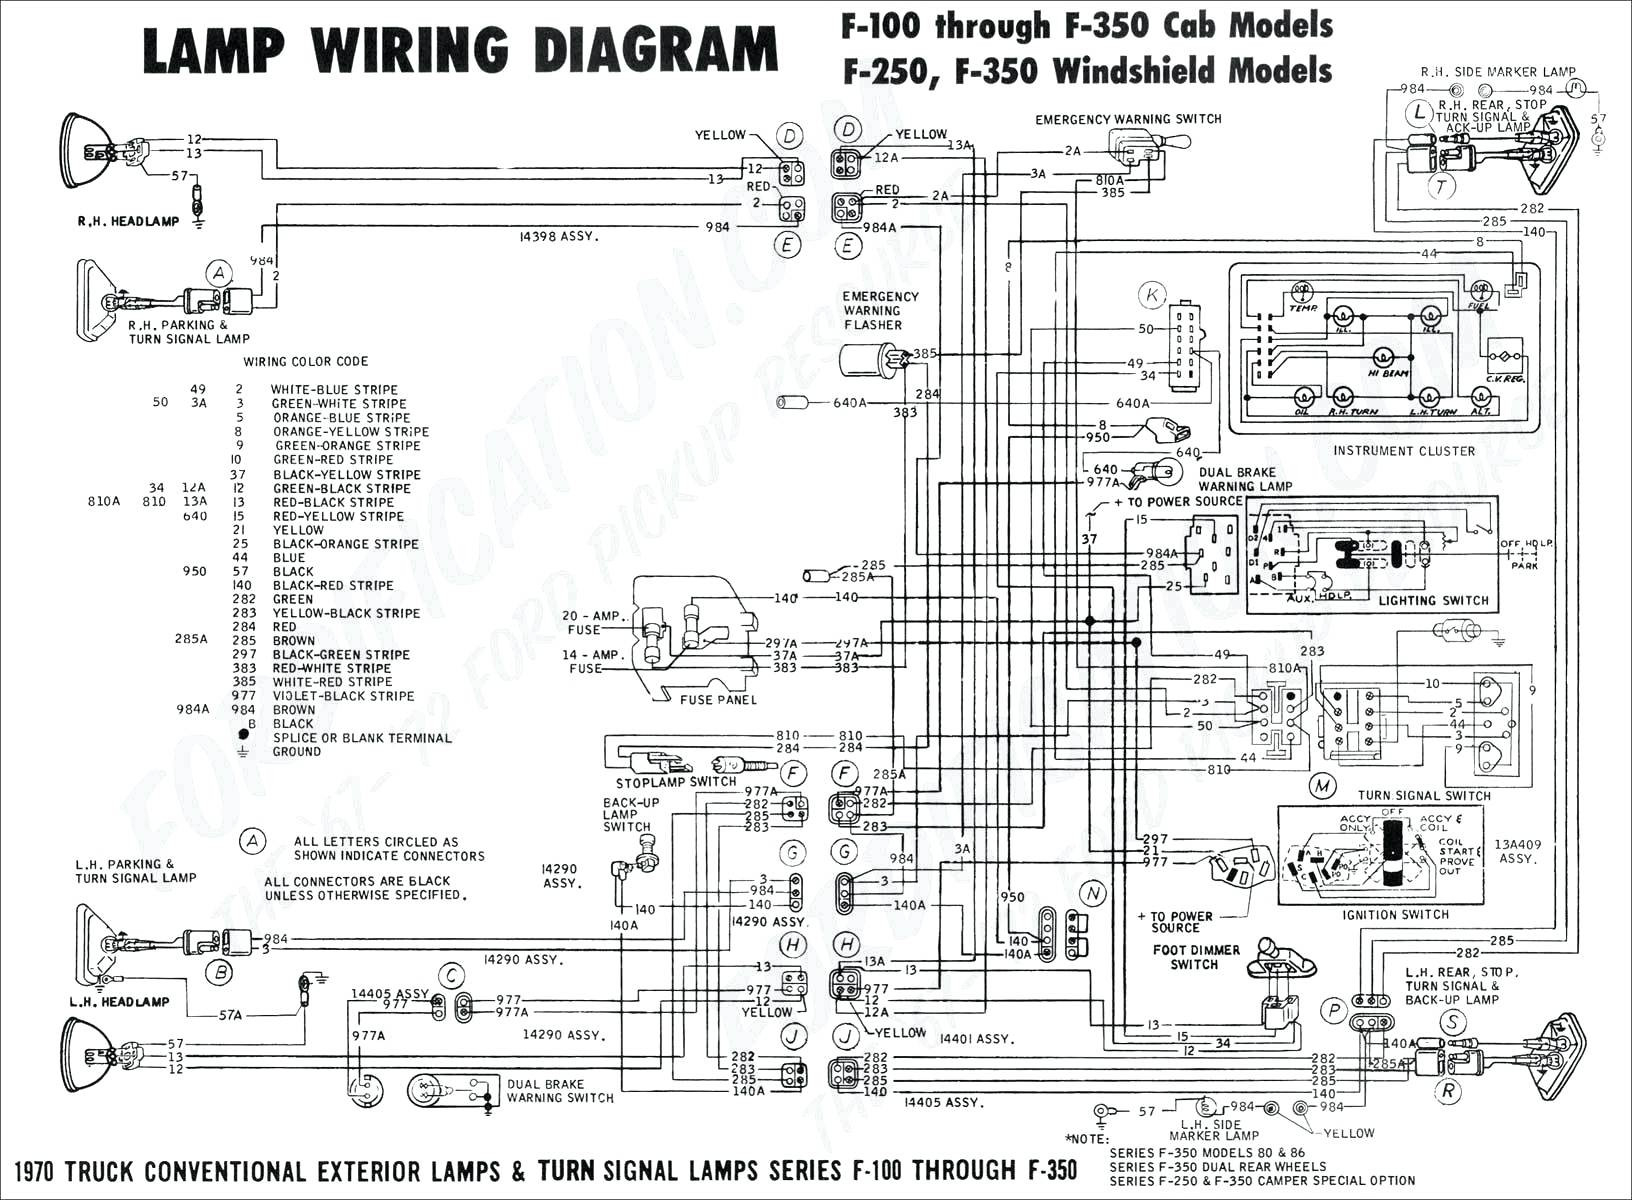 ford f550 pto wiring diagram Collection-2017 Ford F550 Pto Wiring Diagram Recent 2003 F250 Wiring Diagram Wire Center • – Wiring Diagram Collection 6-s